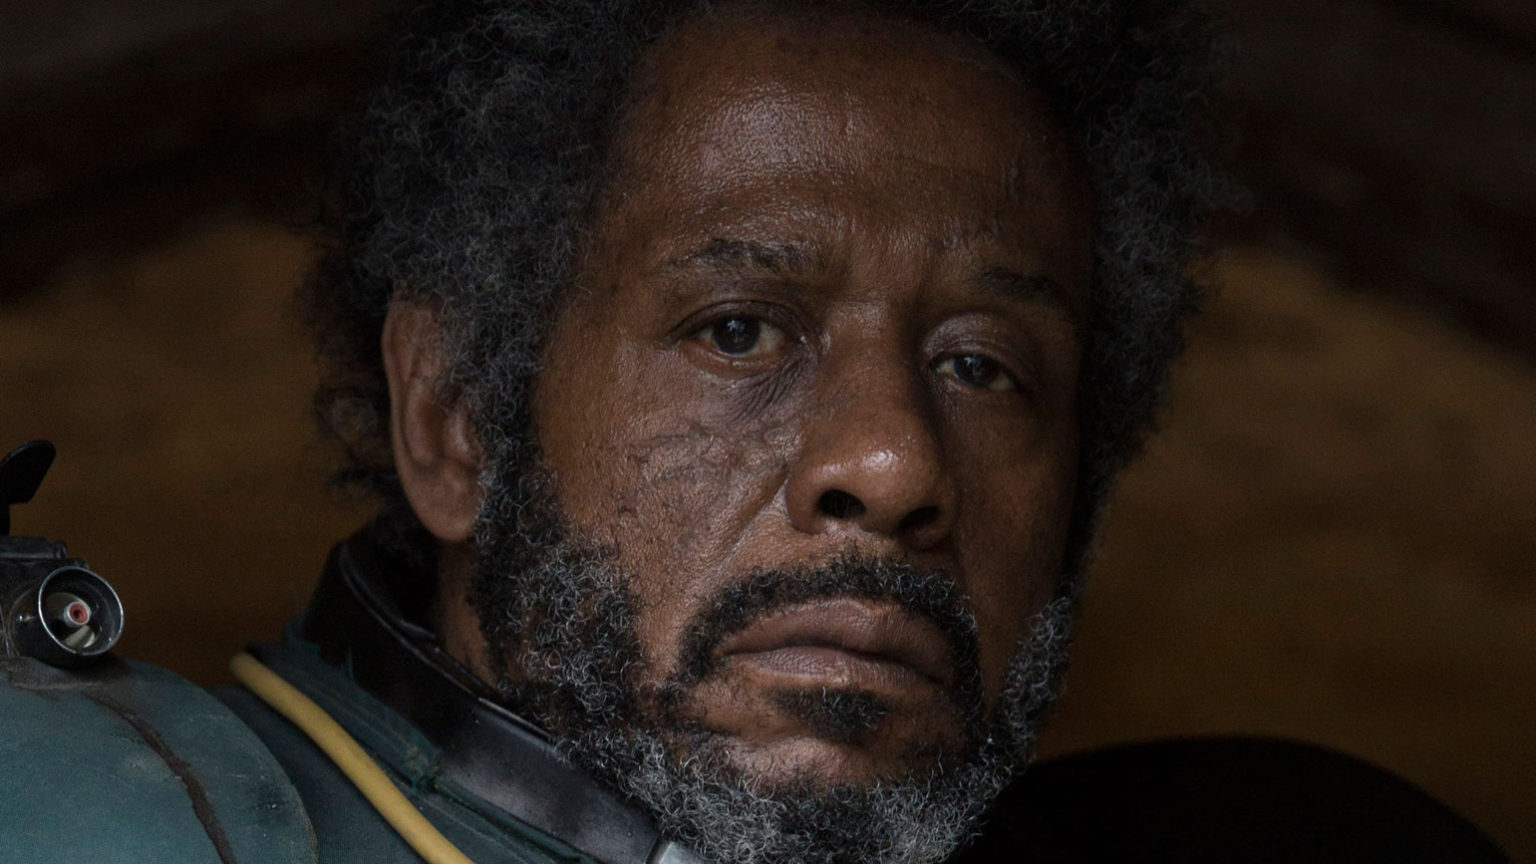 rogue one saw gerrera forest whitaker